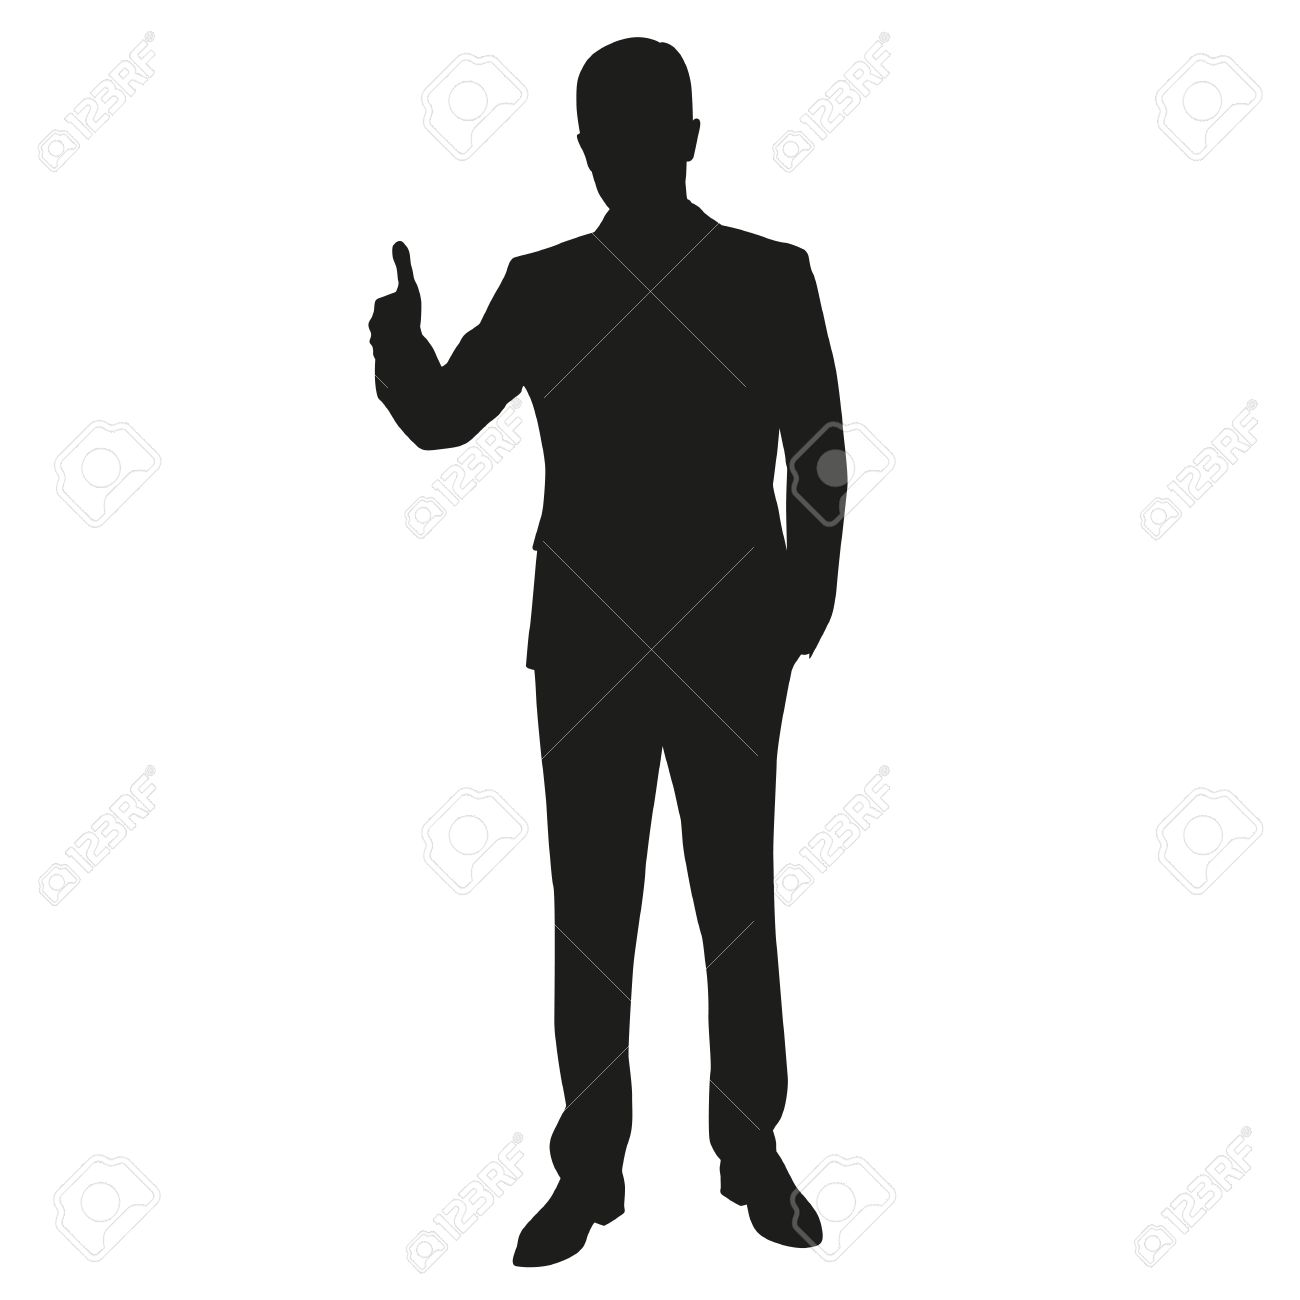 thumbs up man vector silhouette royalty free cliparts vectors and rh 123rf com man vector logo man vector free